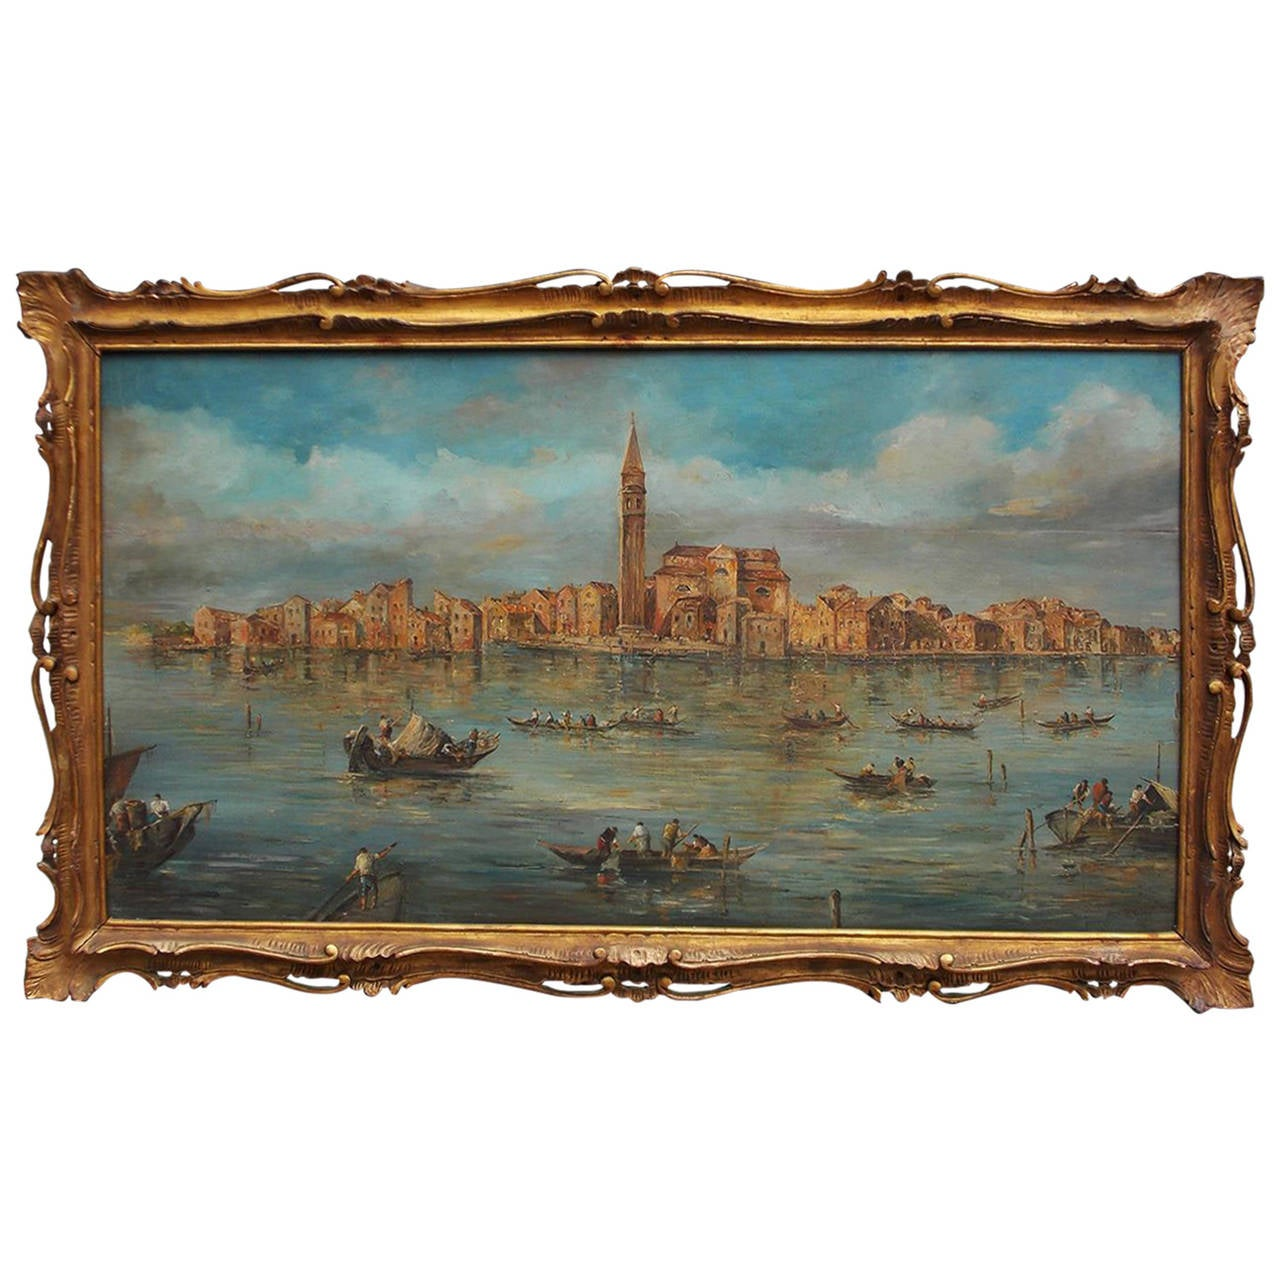 Venetian Oil On Board Painting, Island of Burano. 18th Century